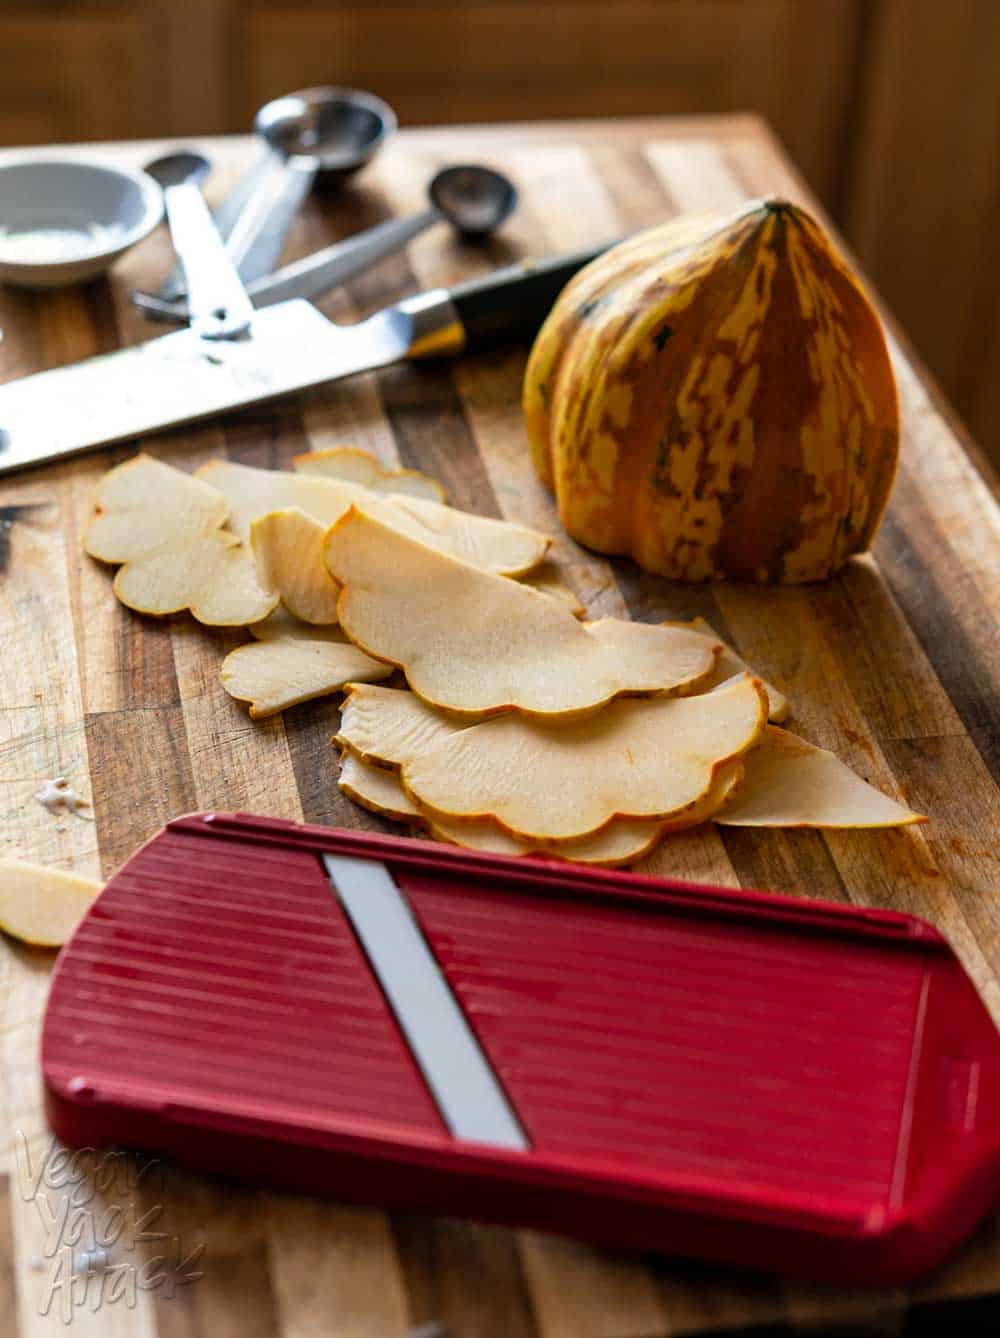 Thinly sliced acorn squash next to a red mandolin